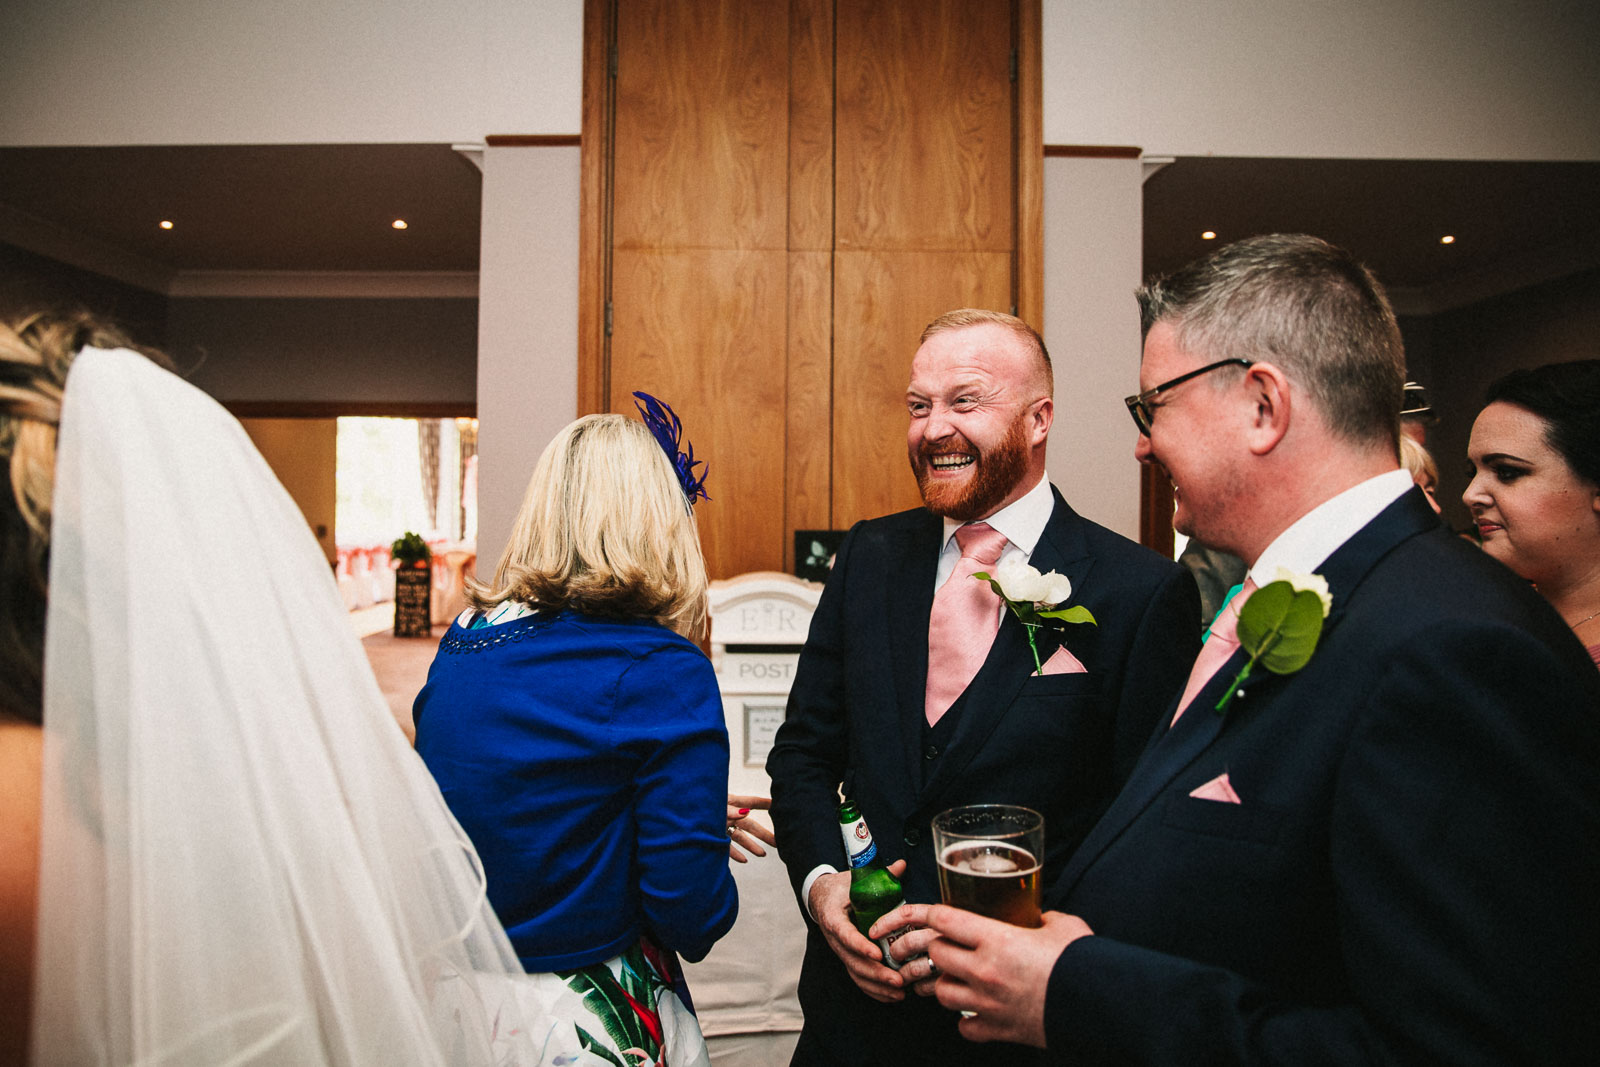 kilhey-court-hotel-wedding-70